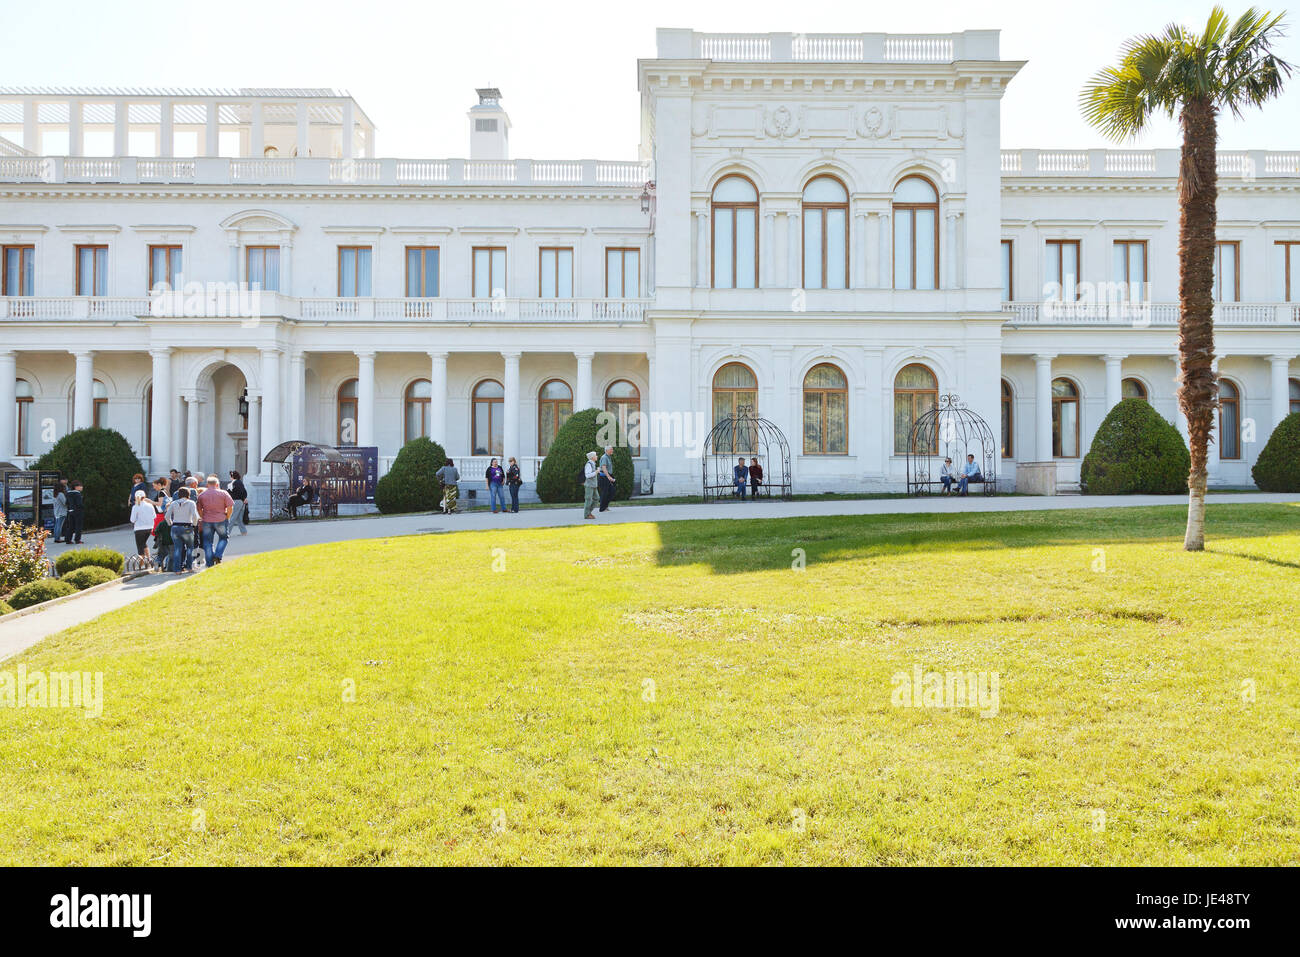 YALTA, RUSSIA - SEPTEMBER 28, 2014: tourists and front view of Grand Livadia Palace in Crimea. Livadia estate was - Stock Image